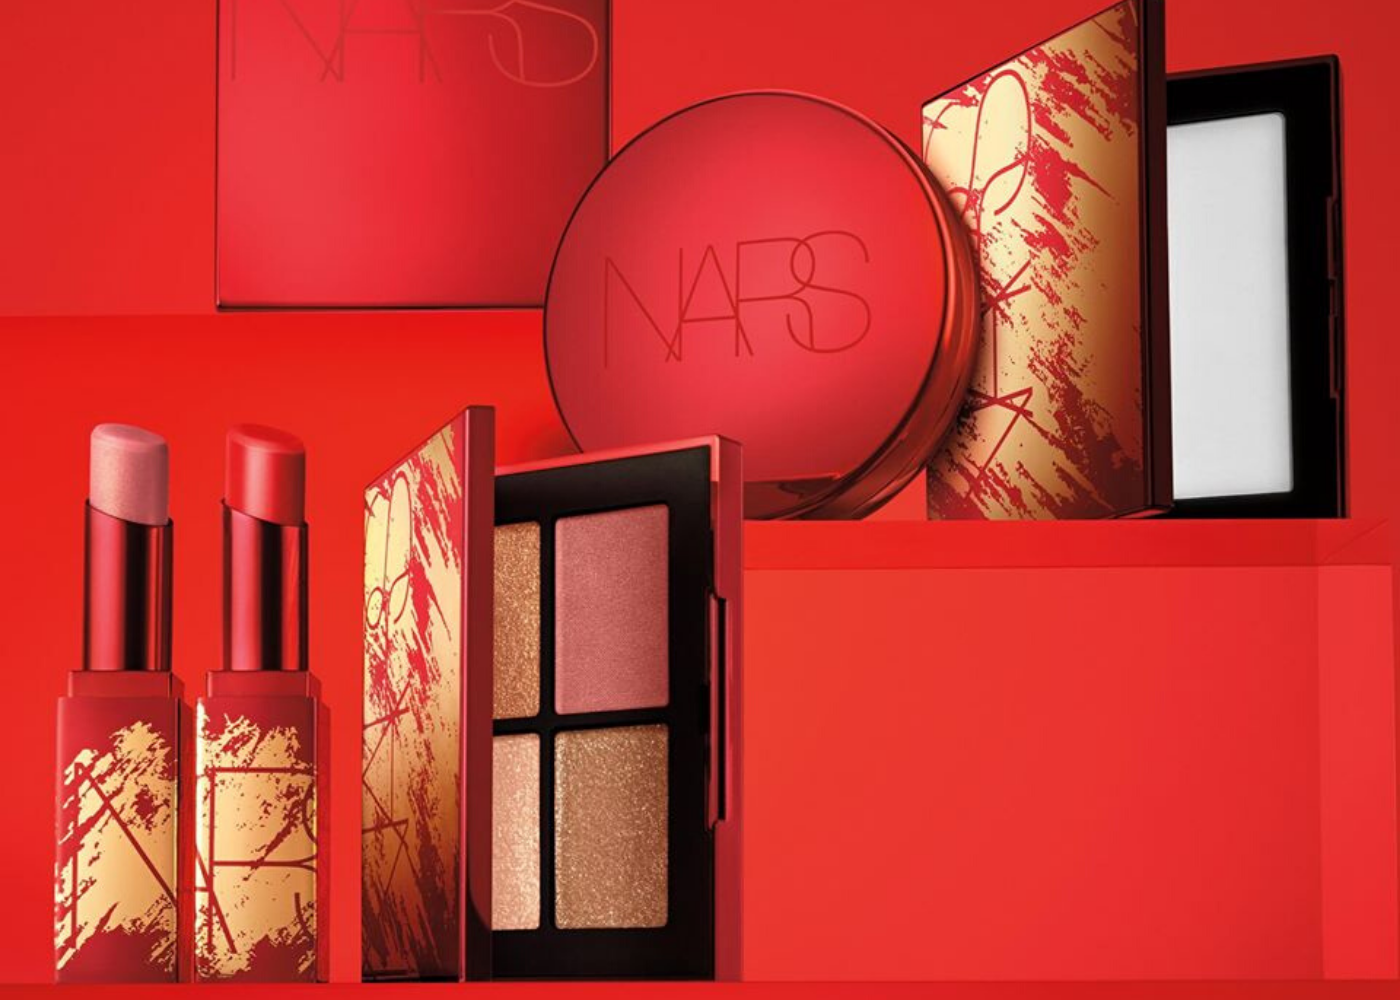 Nars Lunar New Year beauty collection